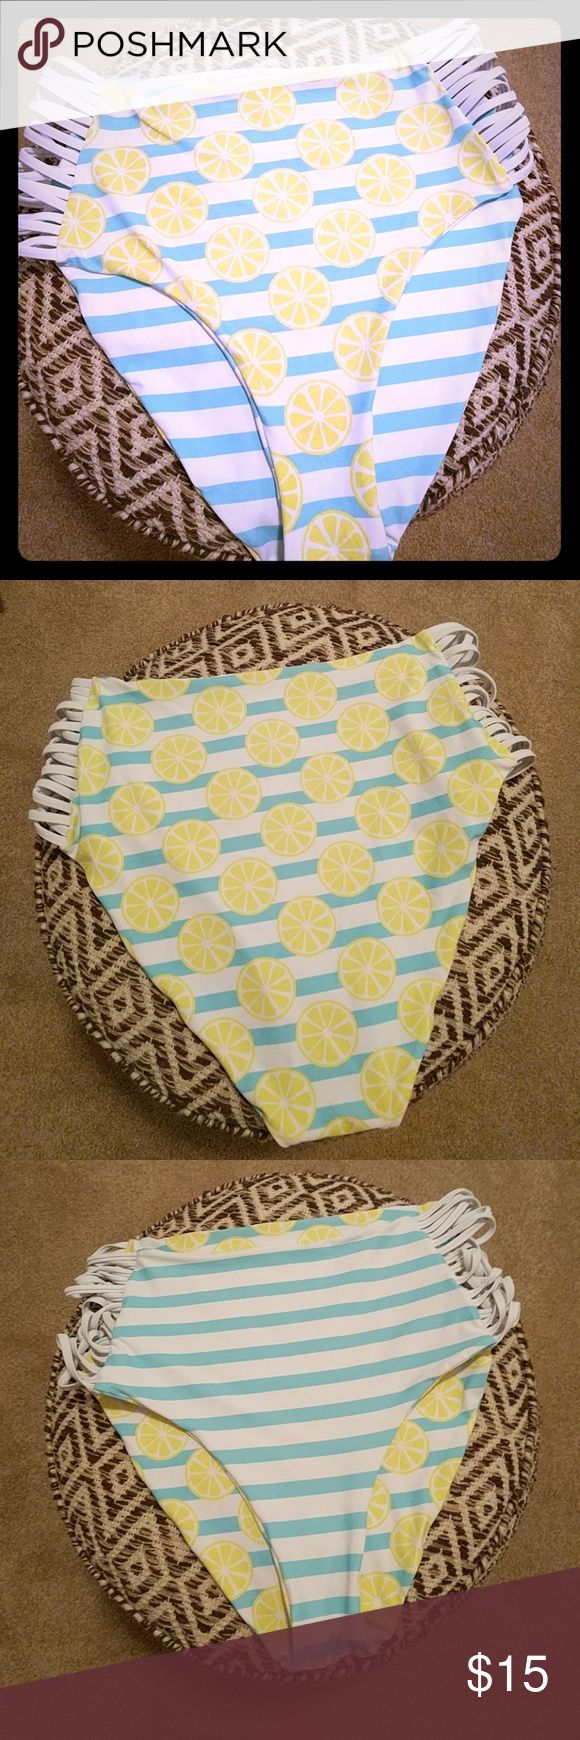 Cupshe high waisted reversible bikini bottoms Women's XL Cupshe brand reversible high waisted bikini bottoms Lemon pattern on one side and blue/white stripes on the other The sides are strappy/open   Does not come with top  Bundle and save! Swim Bikinis